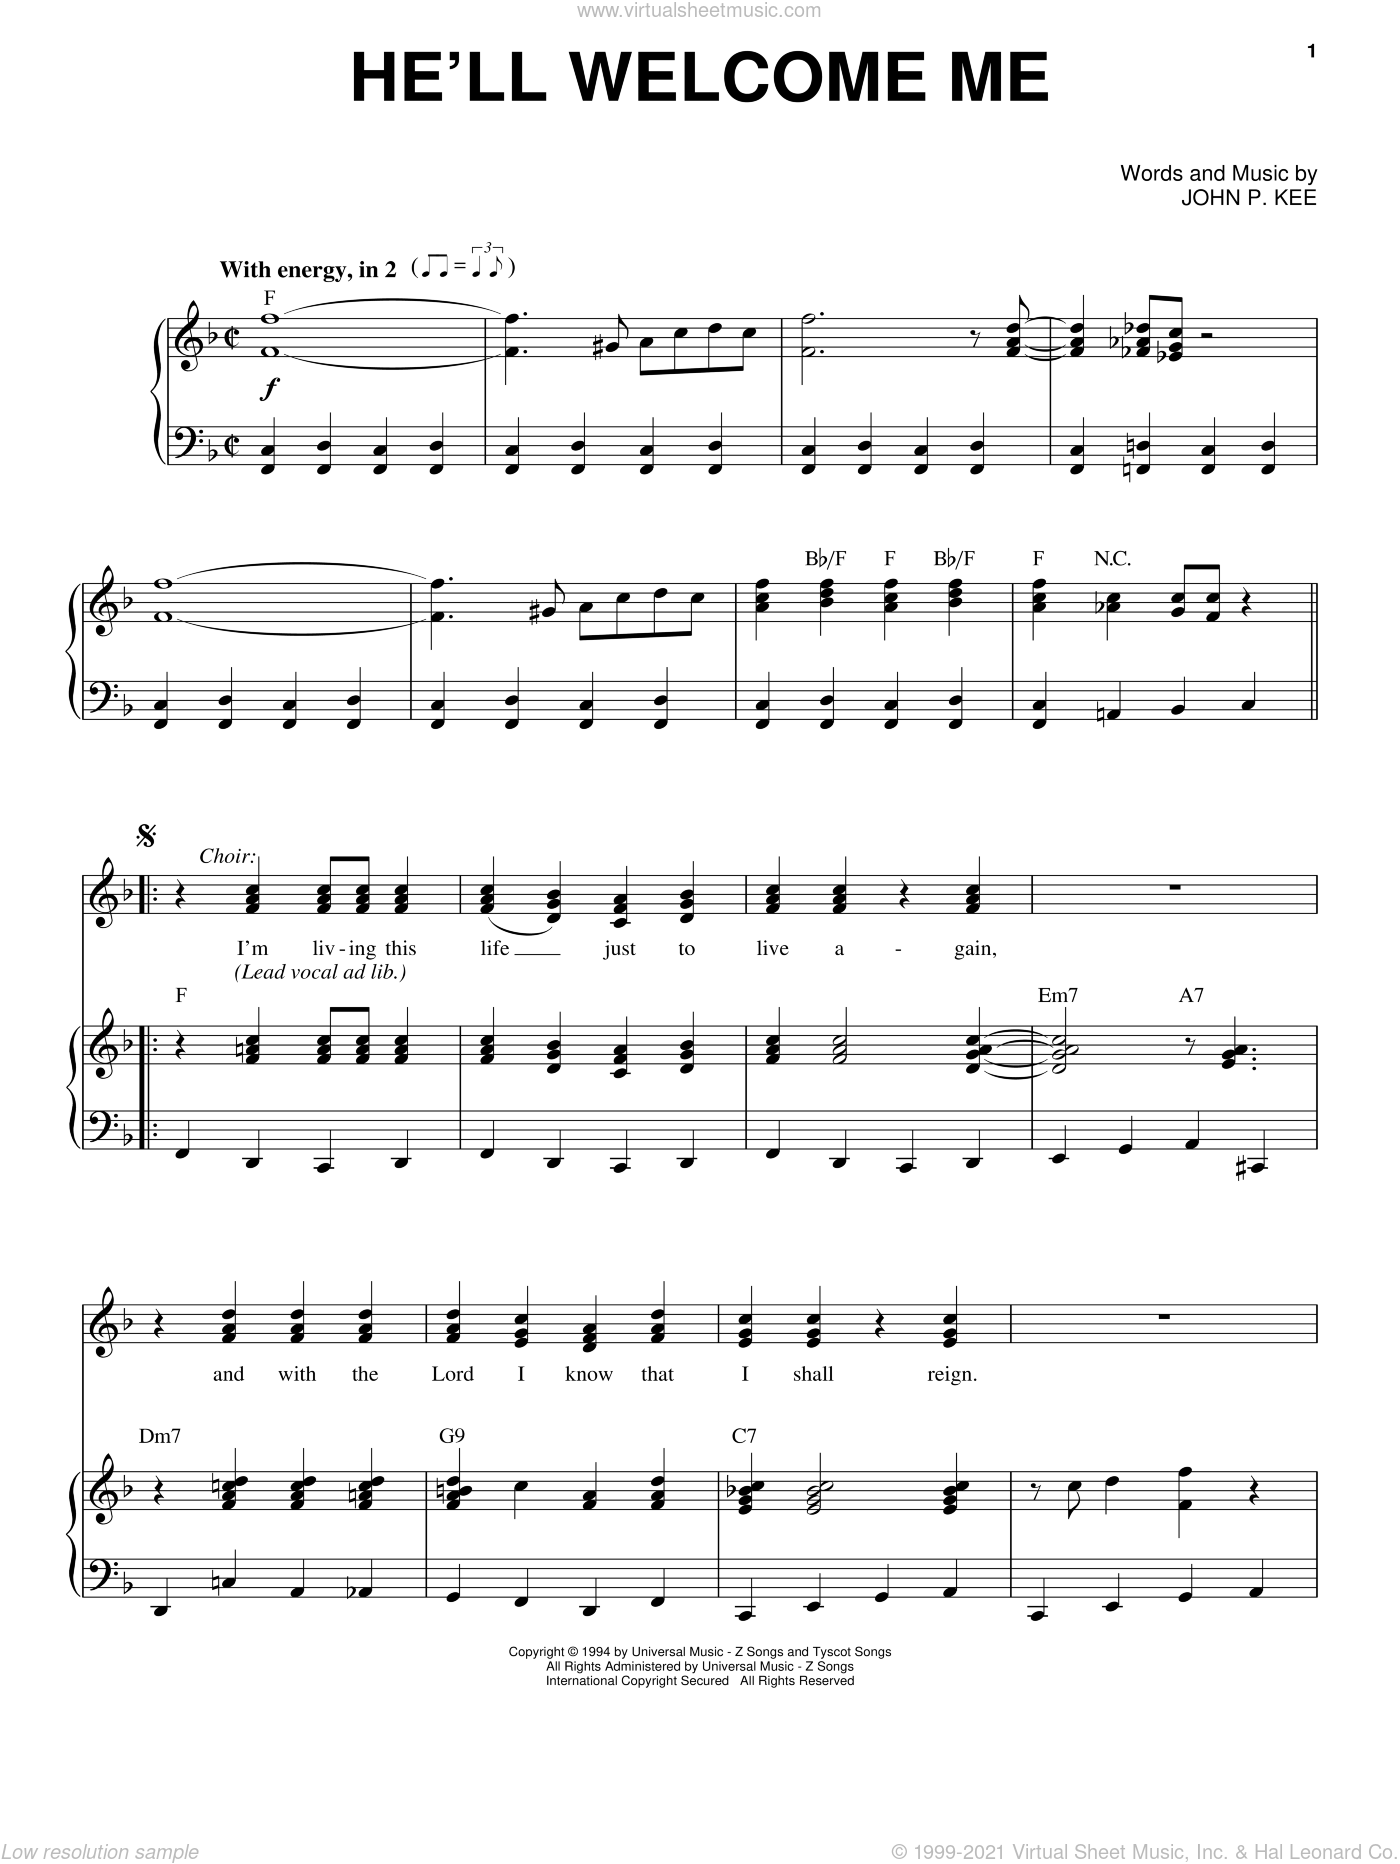 He'll Welcome Me sheet music for voice, piano or guitar by John P. Kee, intermediate skill level